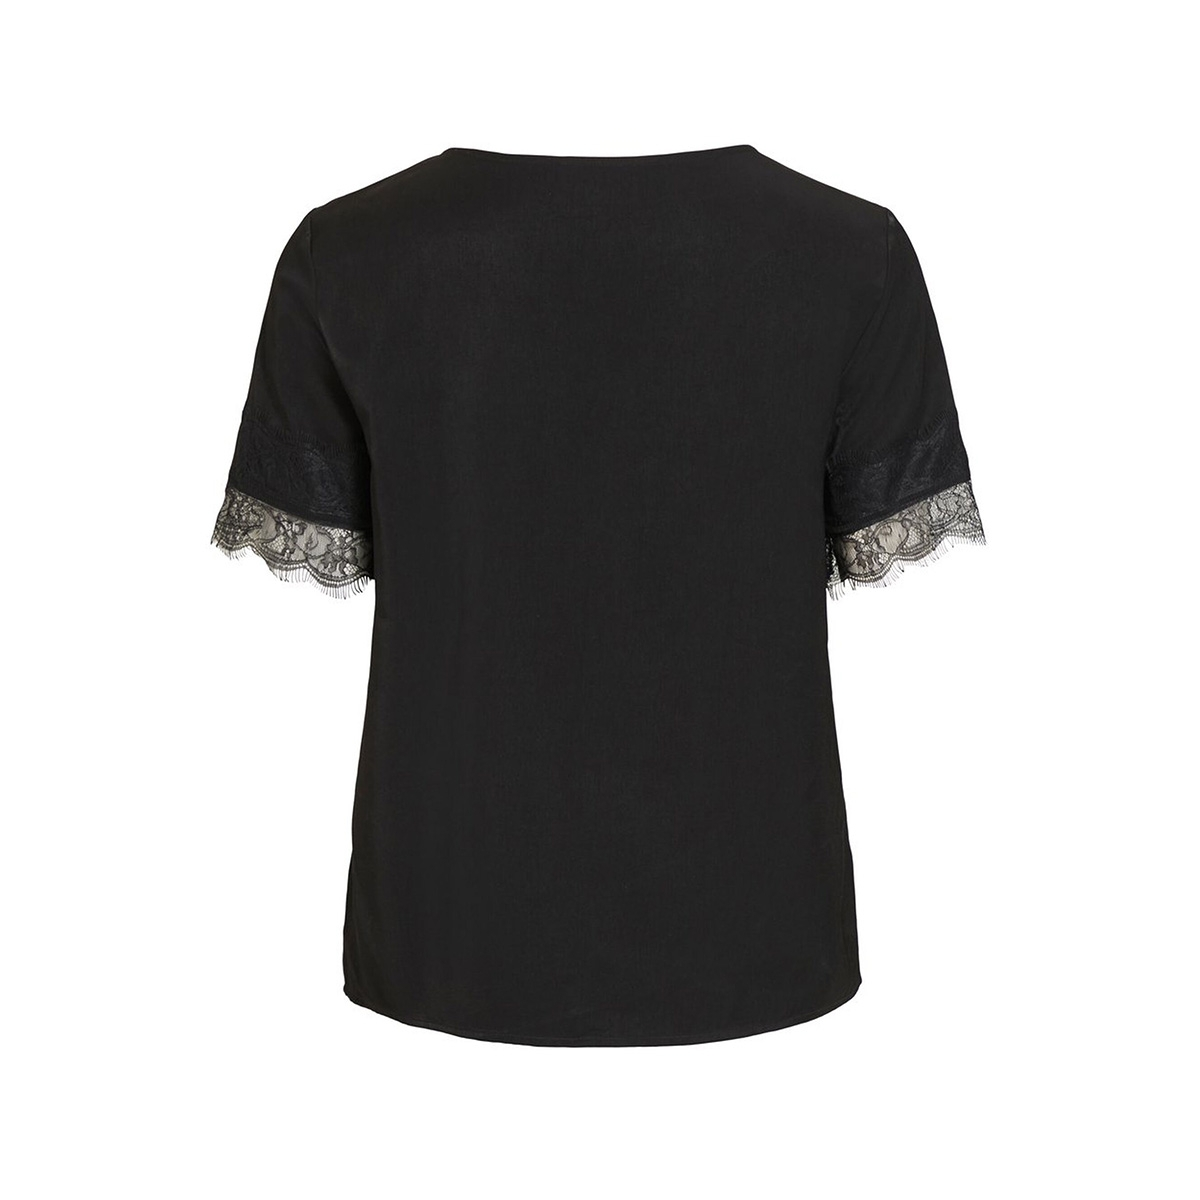 objeileen s/s  lace top noos 23031000 object t-shirt black